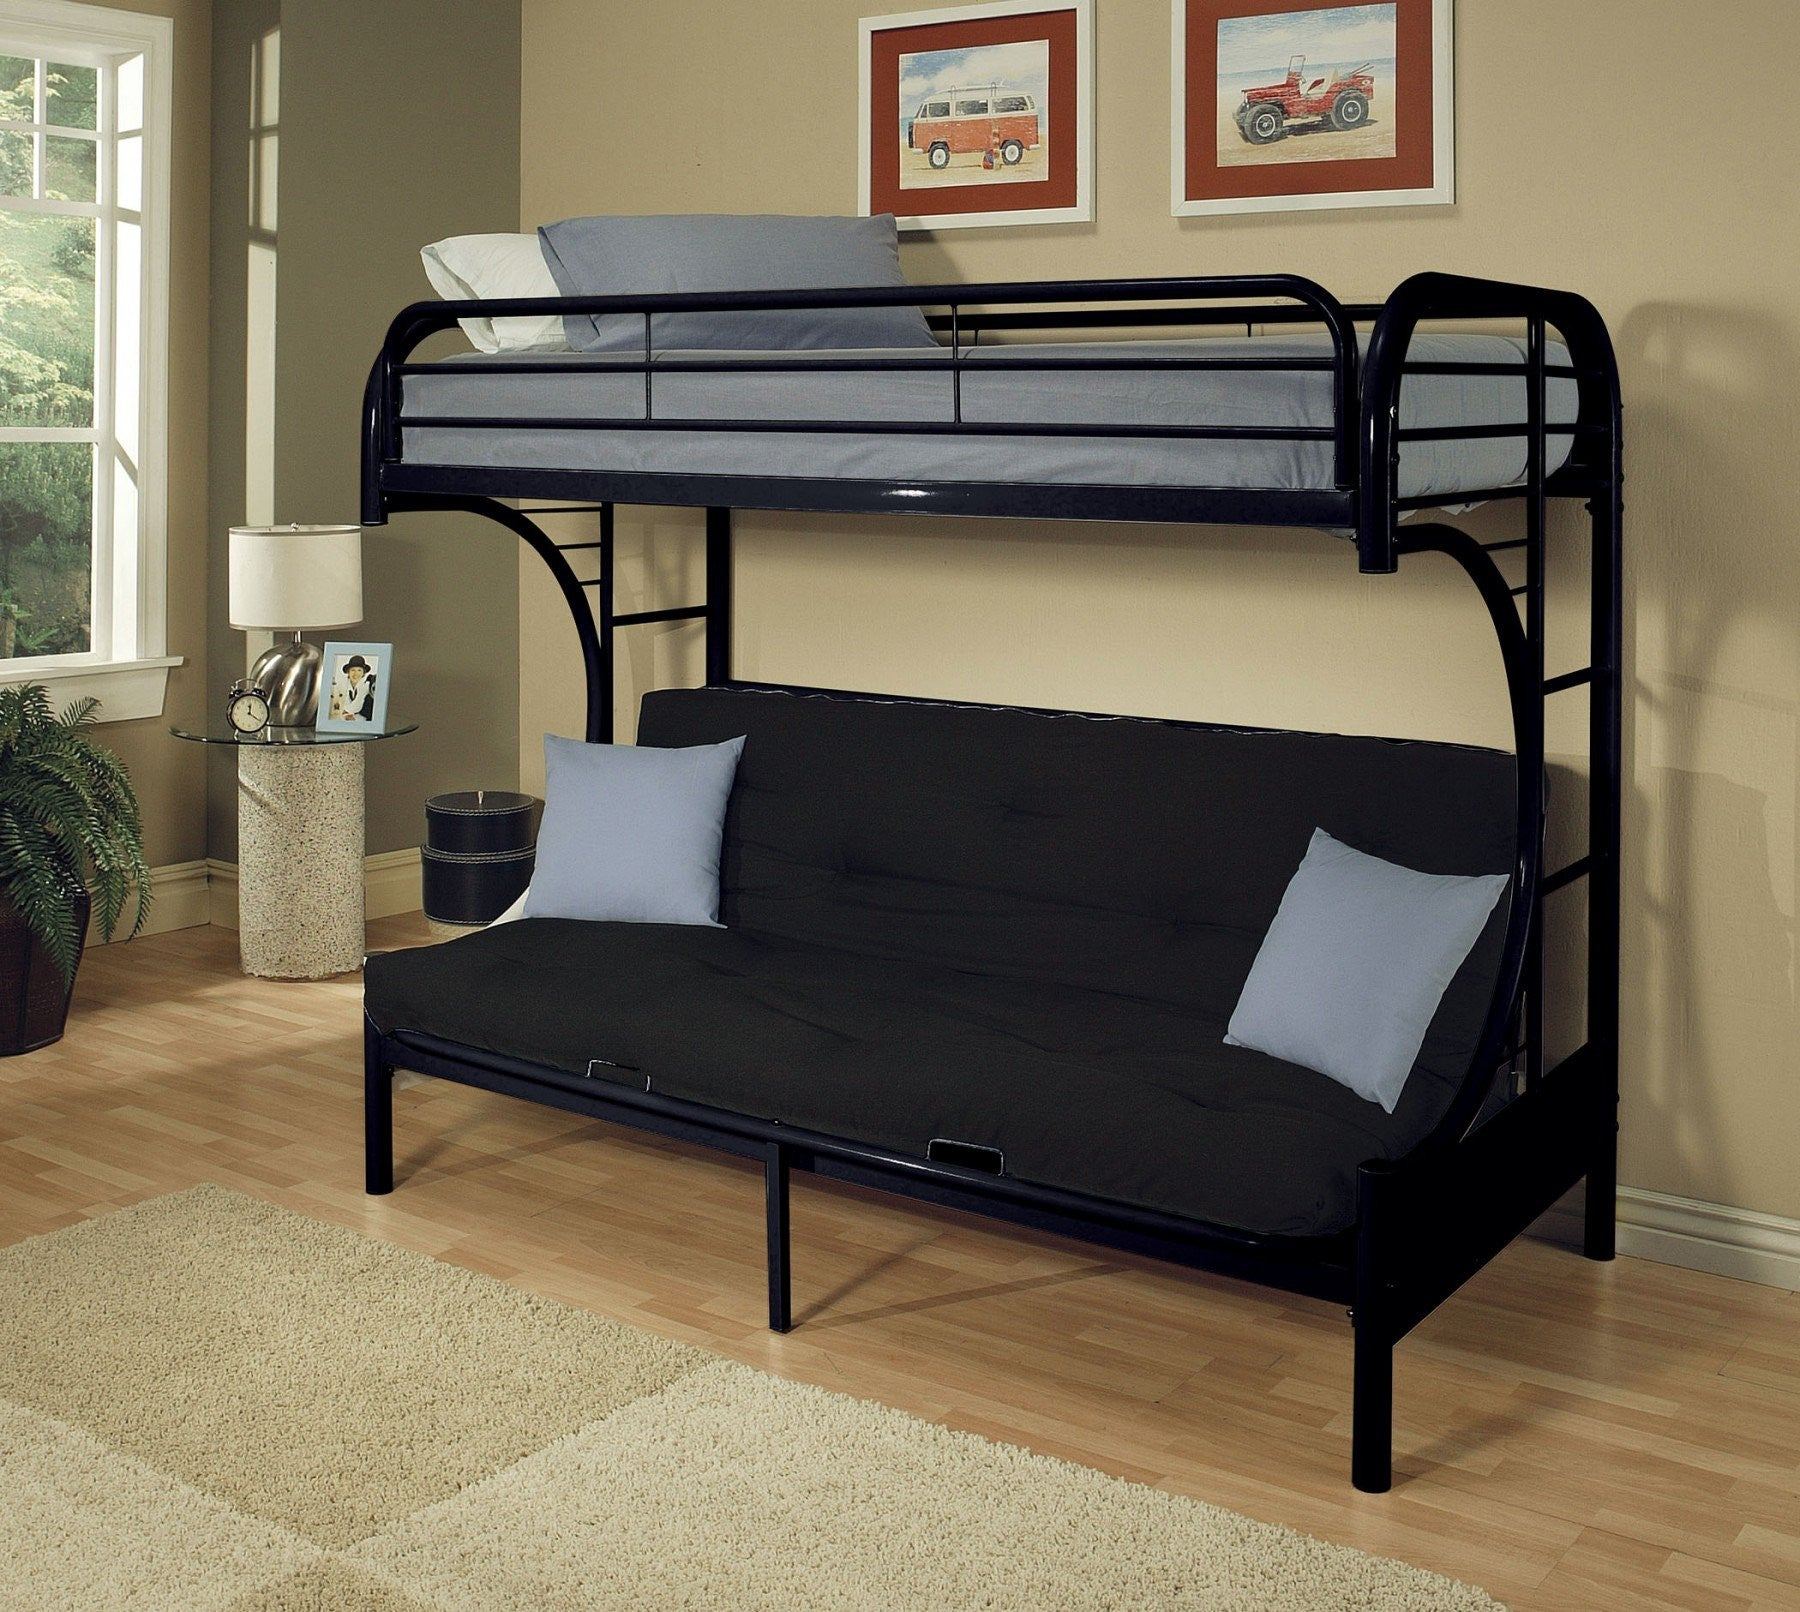 Twin Xl Futon Bunk Bed